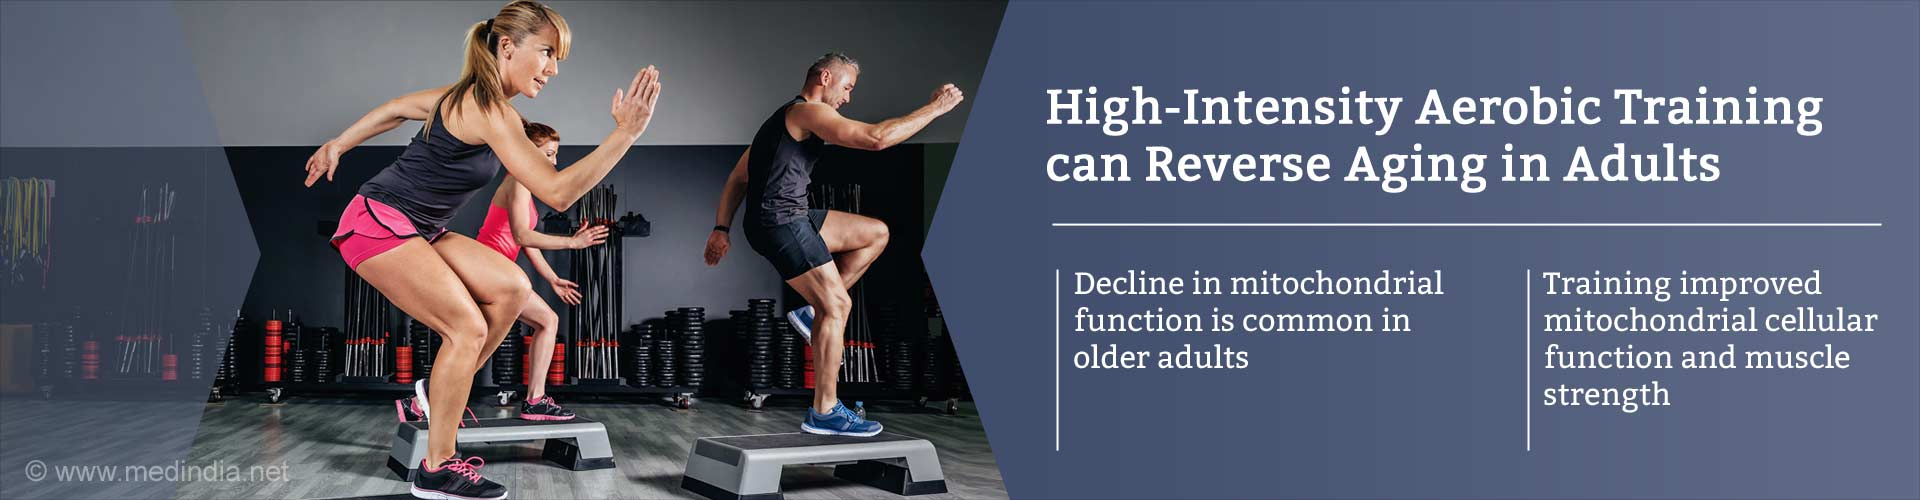 High-Intensity Aerobic Training, Helps Preserve Youth